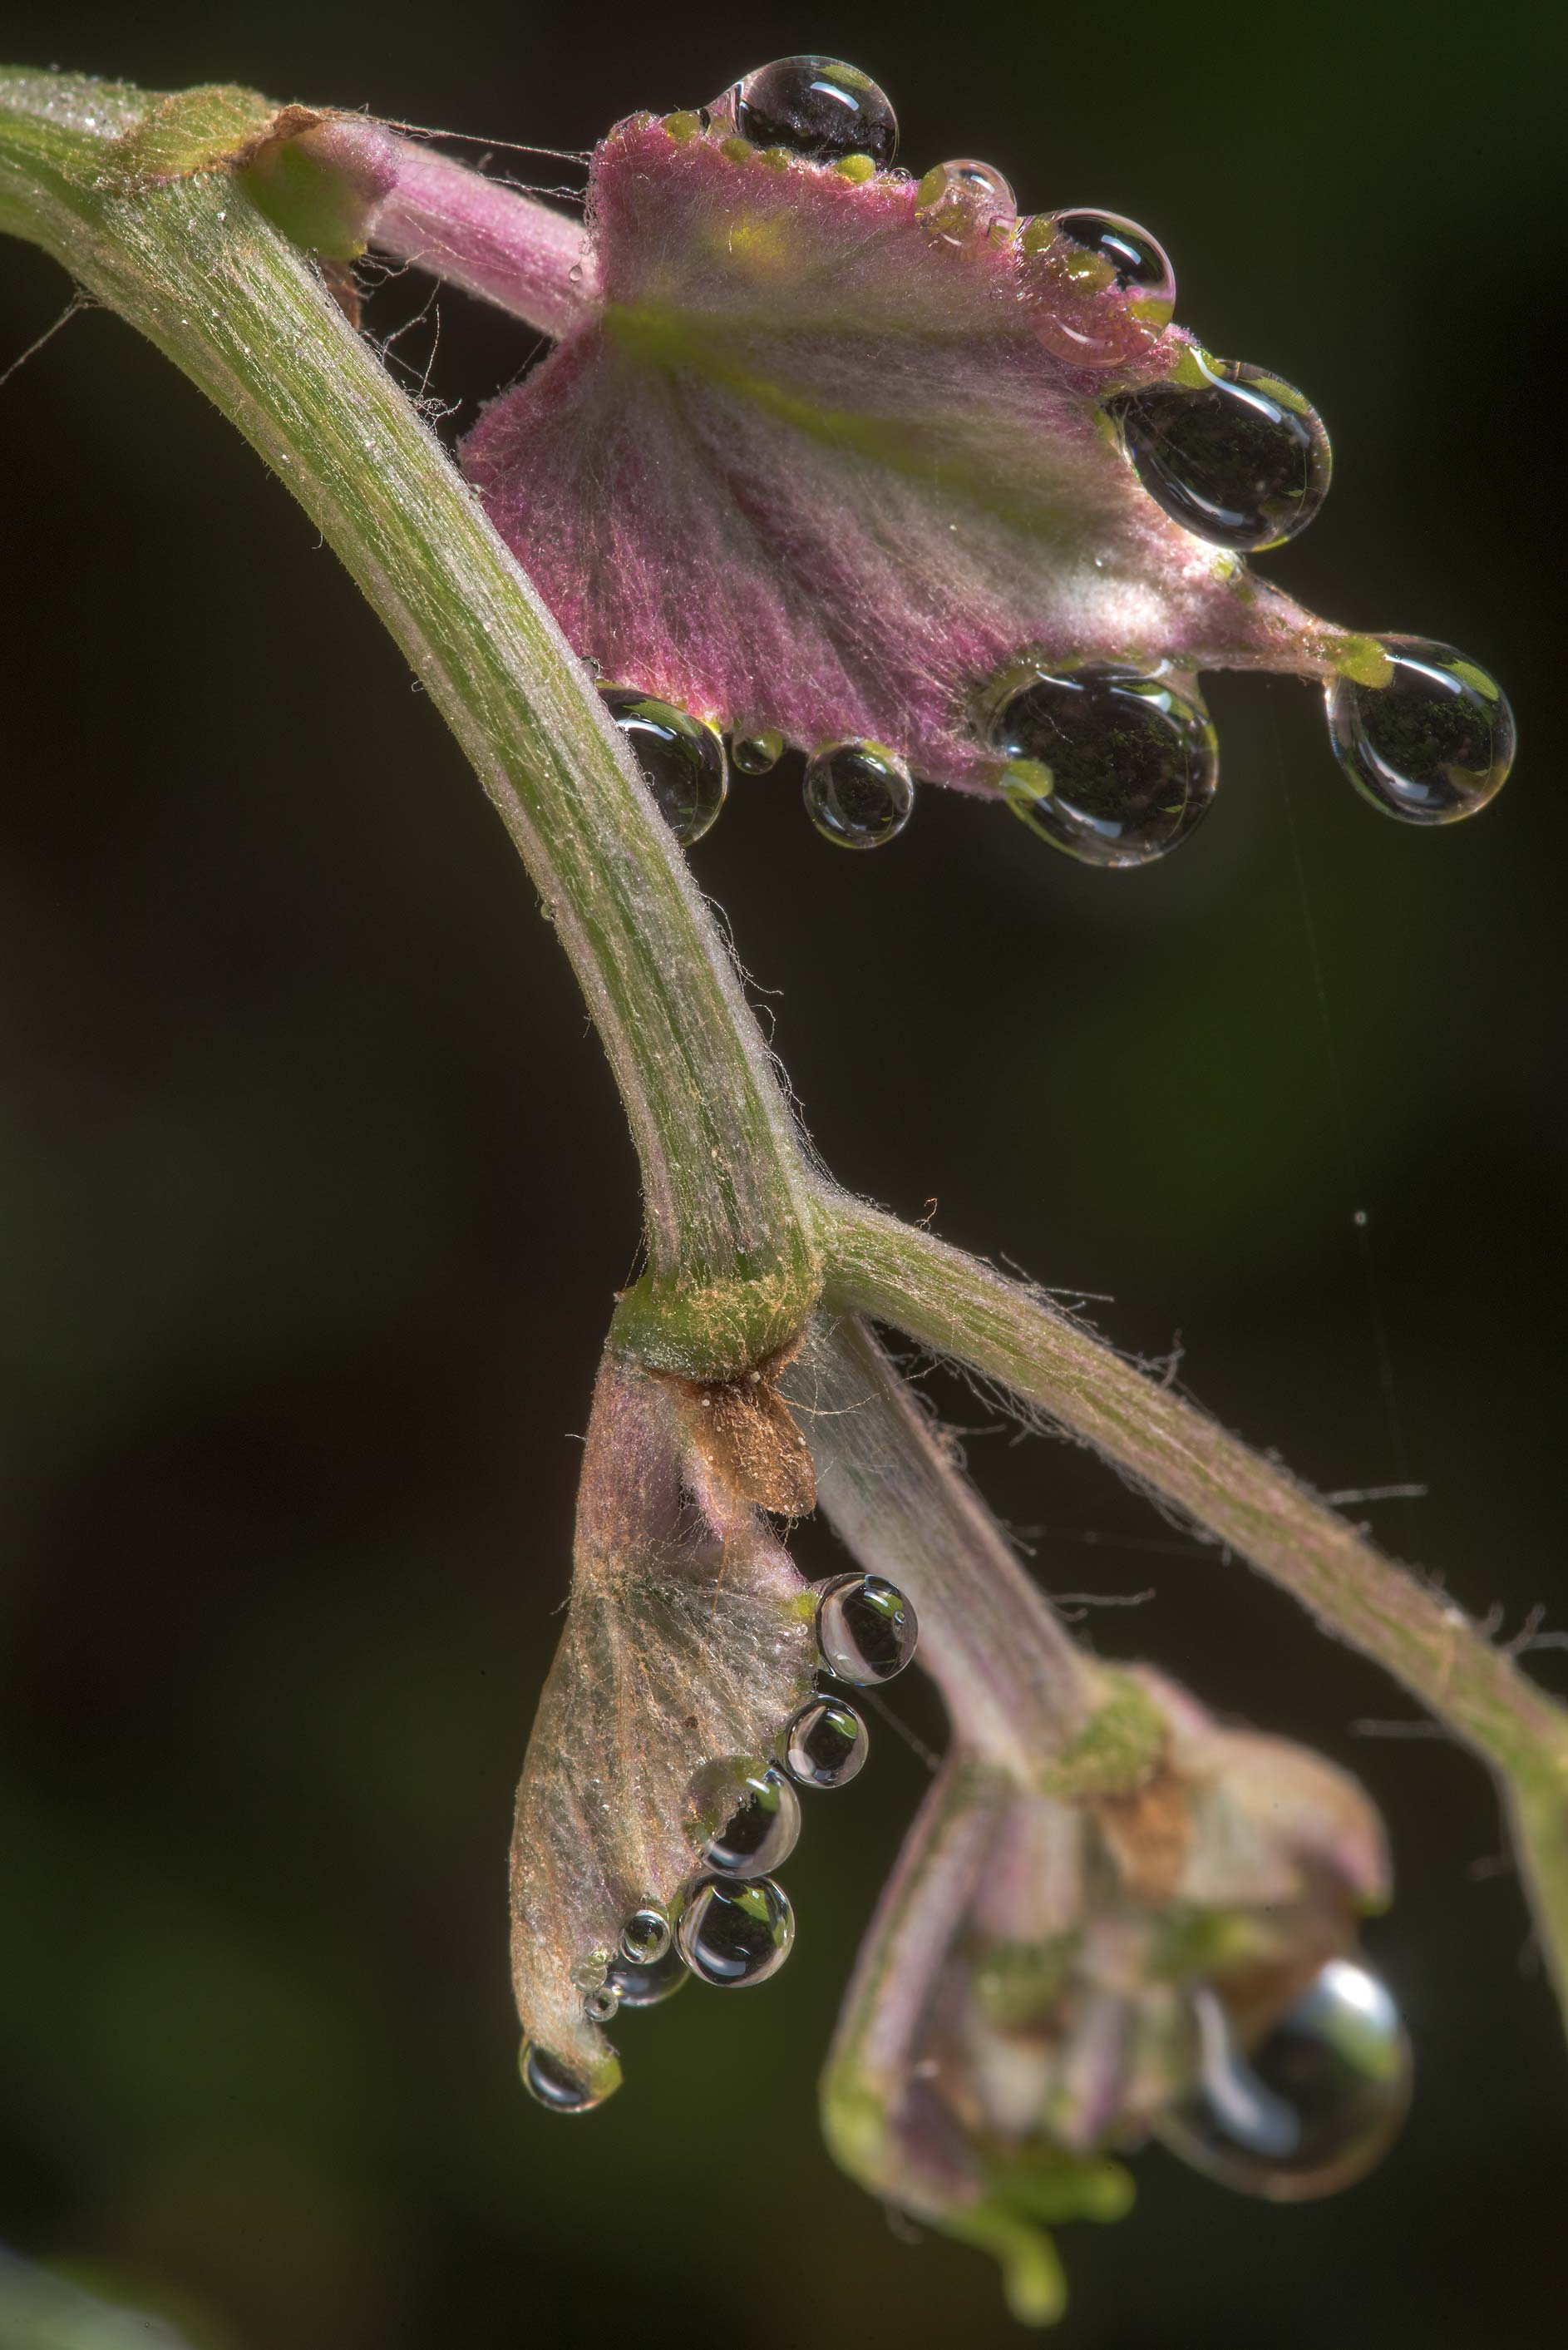 Shoot of mustang grape (Vitis mustangensis) in Lick Creek Park. College Station, Texas